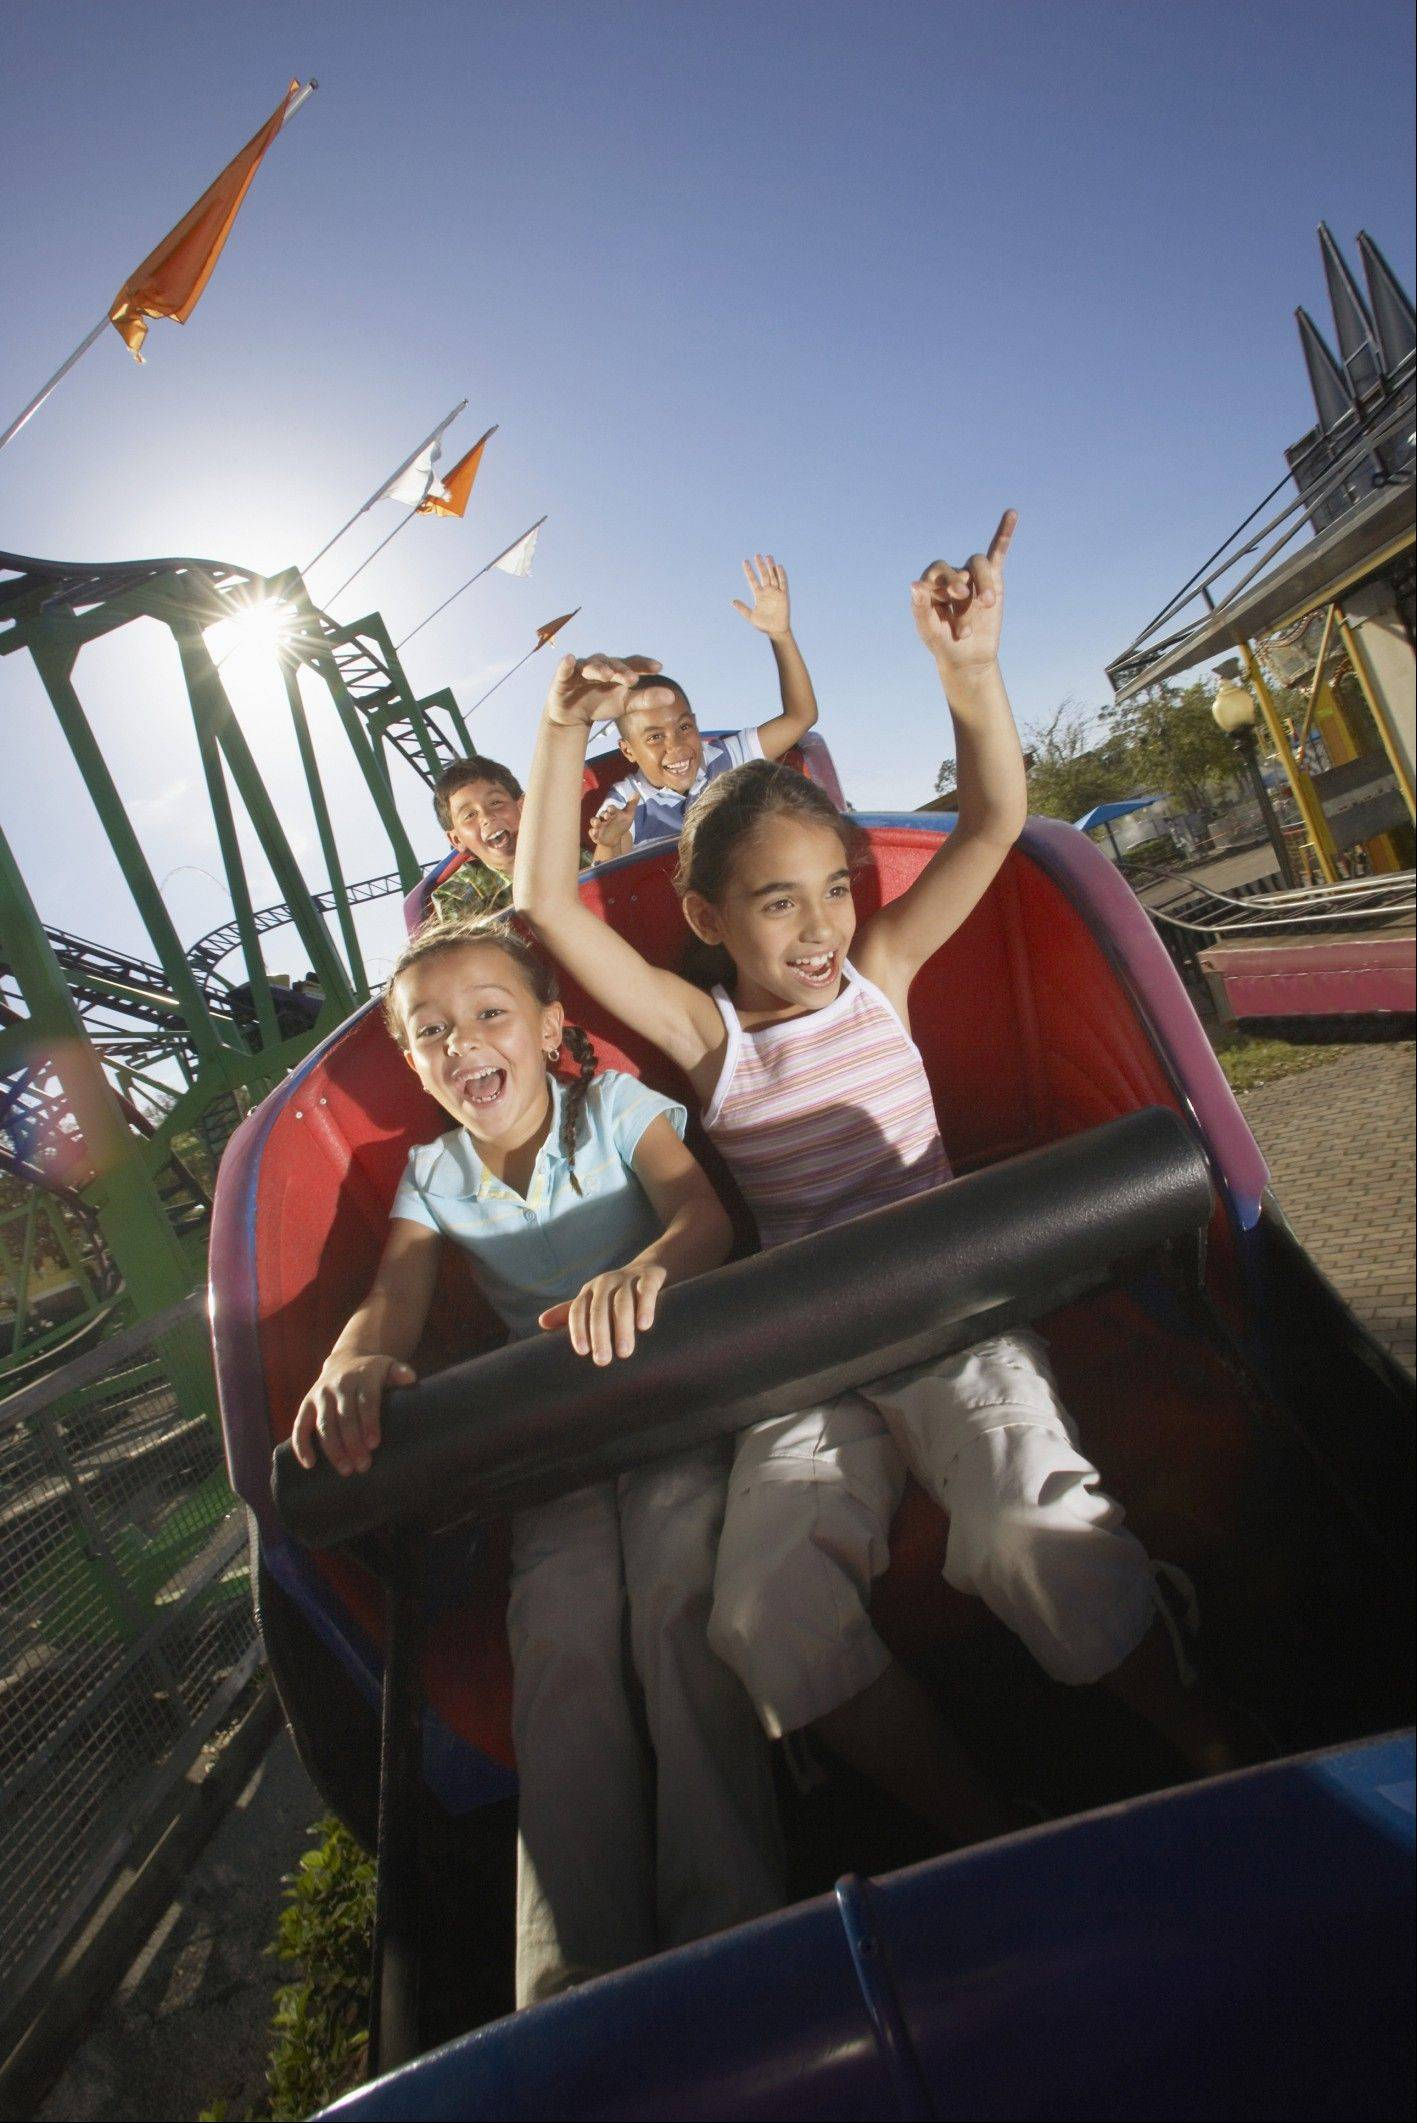 Younger children need to take safety precautions when on amusement park rides to avoid injury.